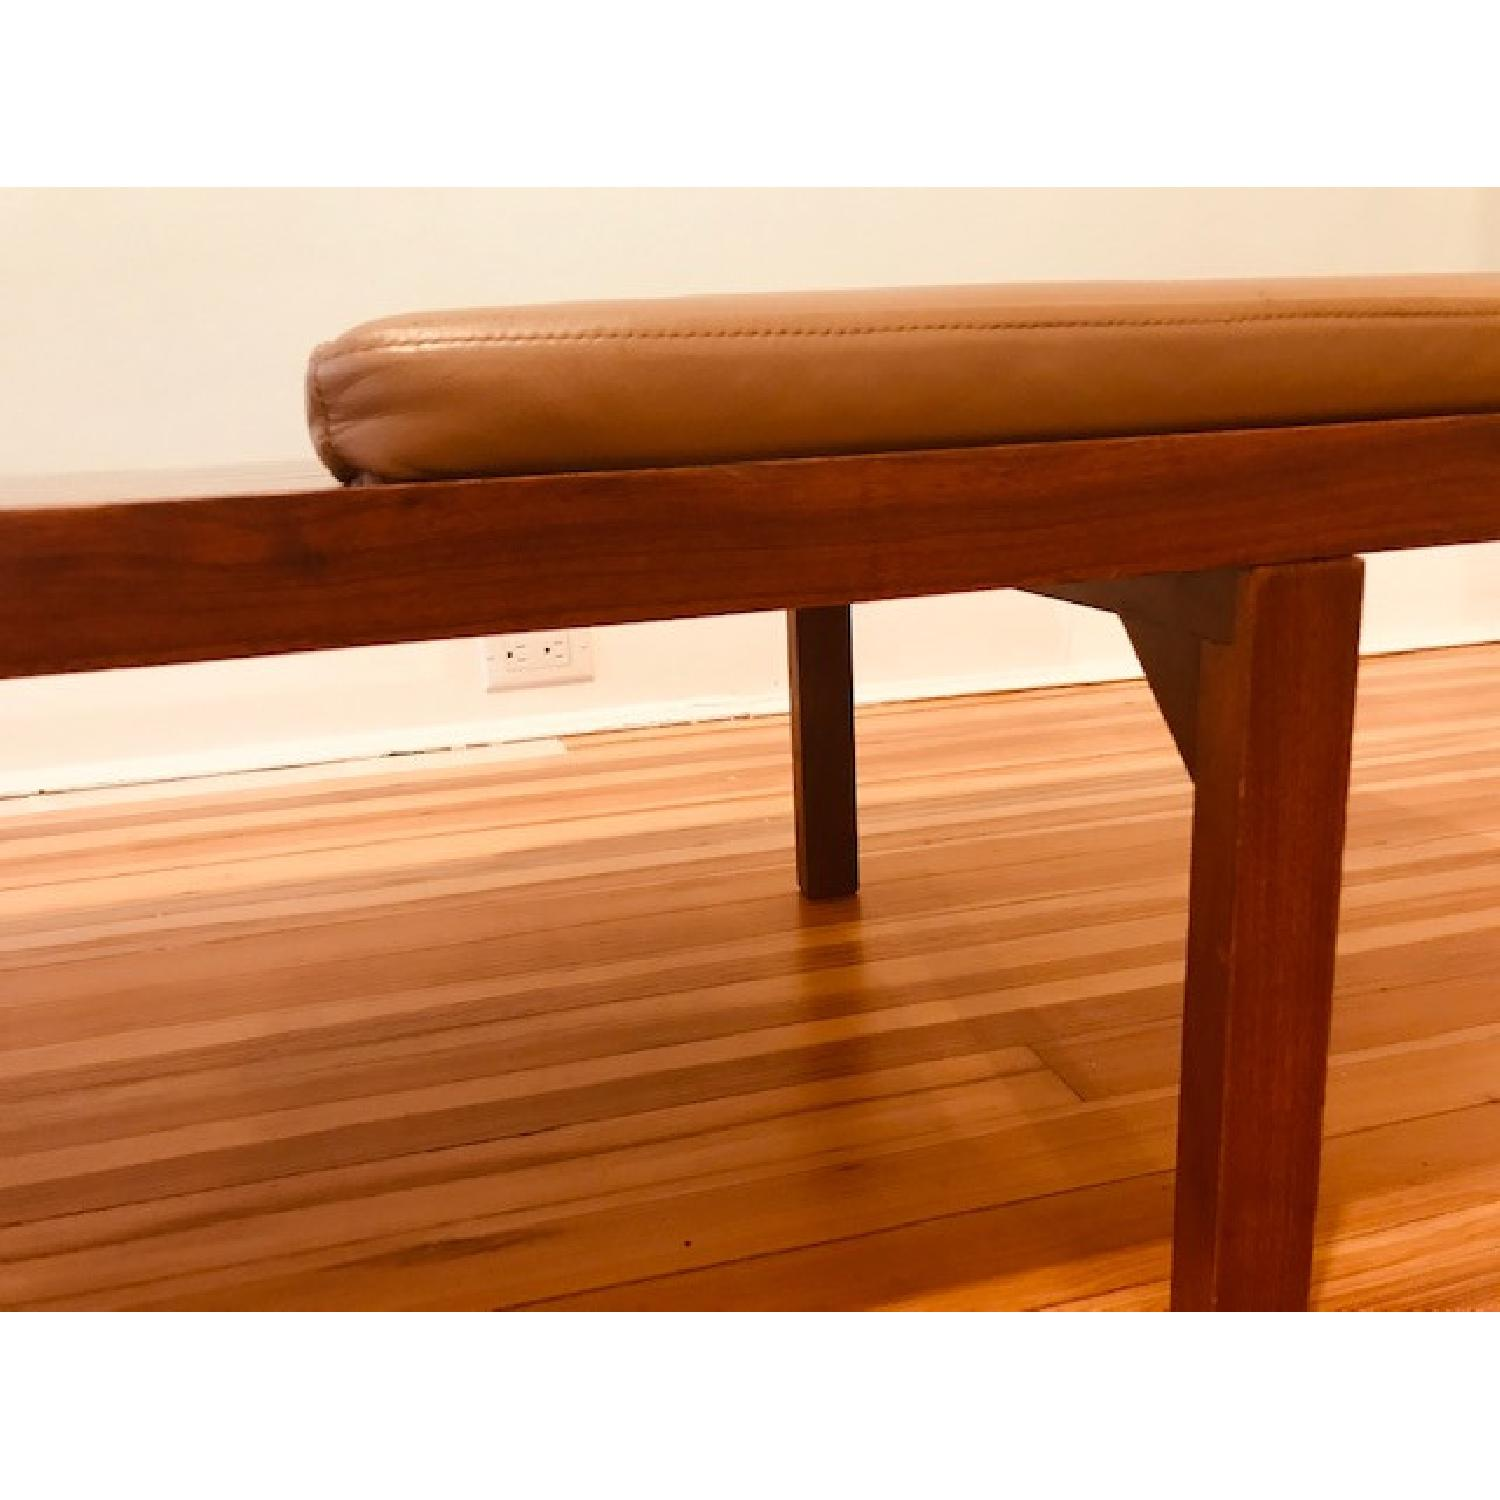 Organic Modernism Coffee Table/Mueller Bench - image-10